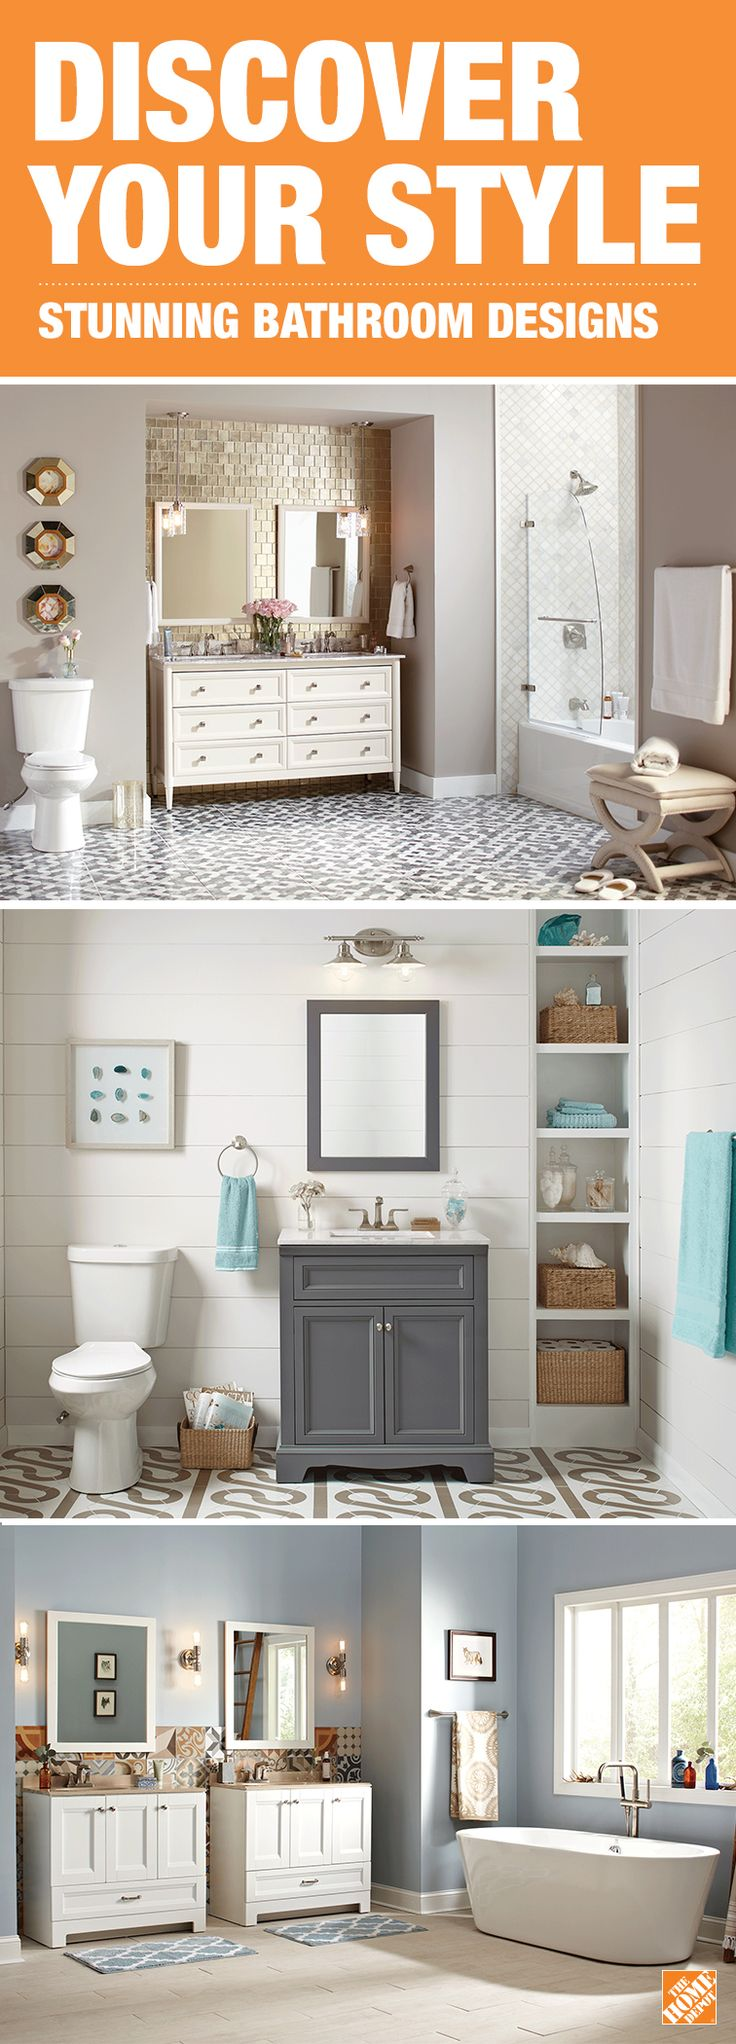 from homedepotcom to create the bathroom of your dreams begin by choosing a stunning vanity whether